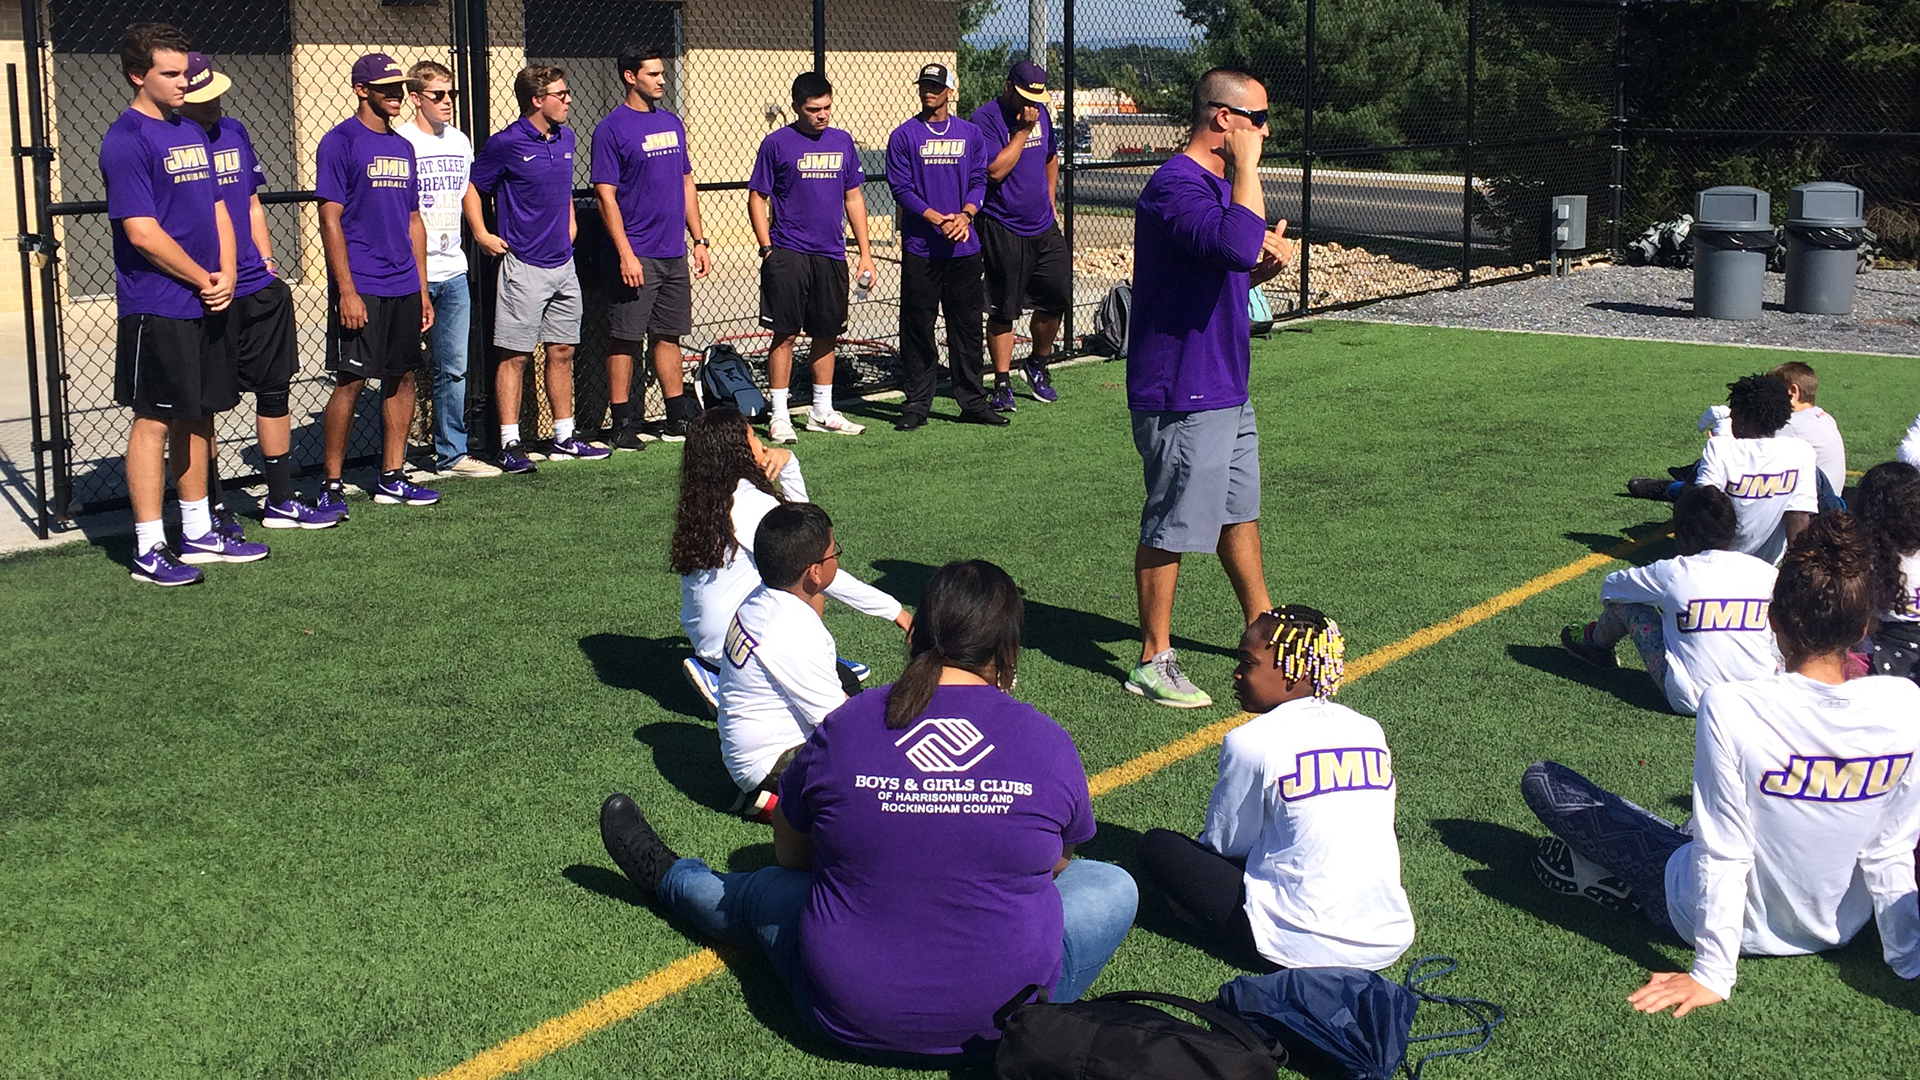 Baseball, Community Relations: Cal Ripken Sr Foundation Visits JMU Baseball)